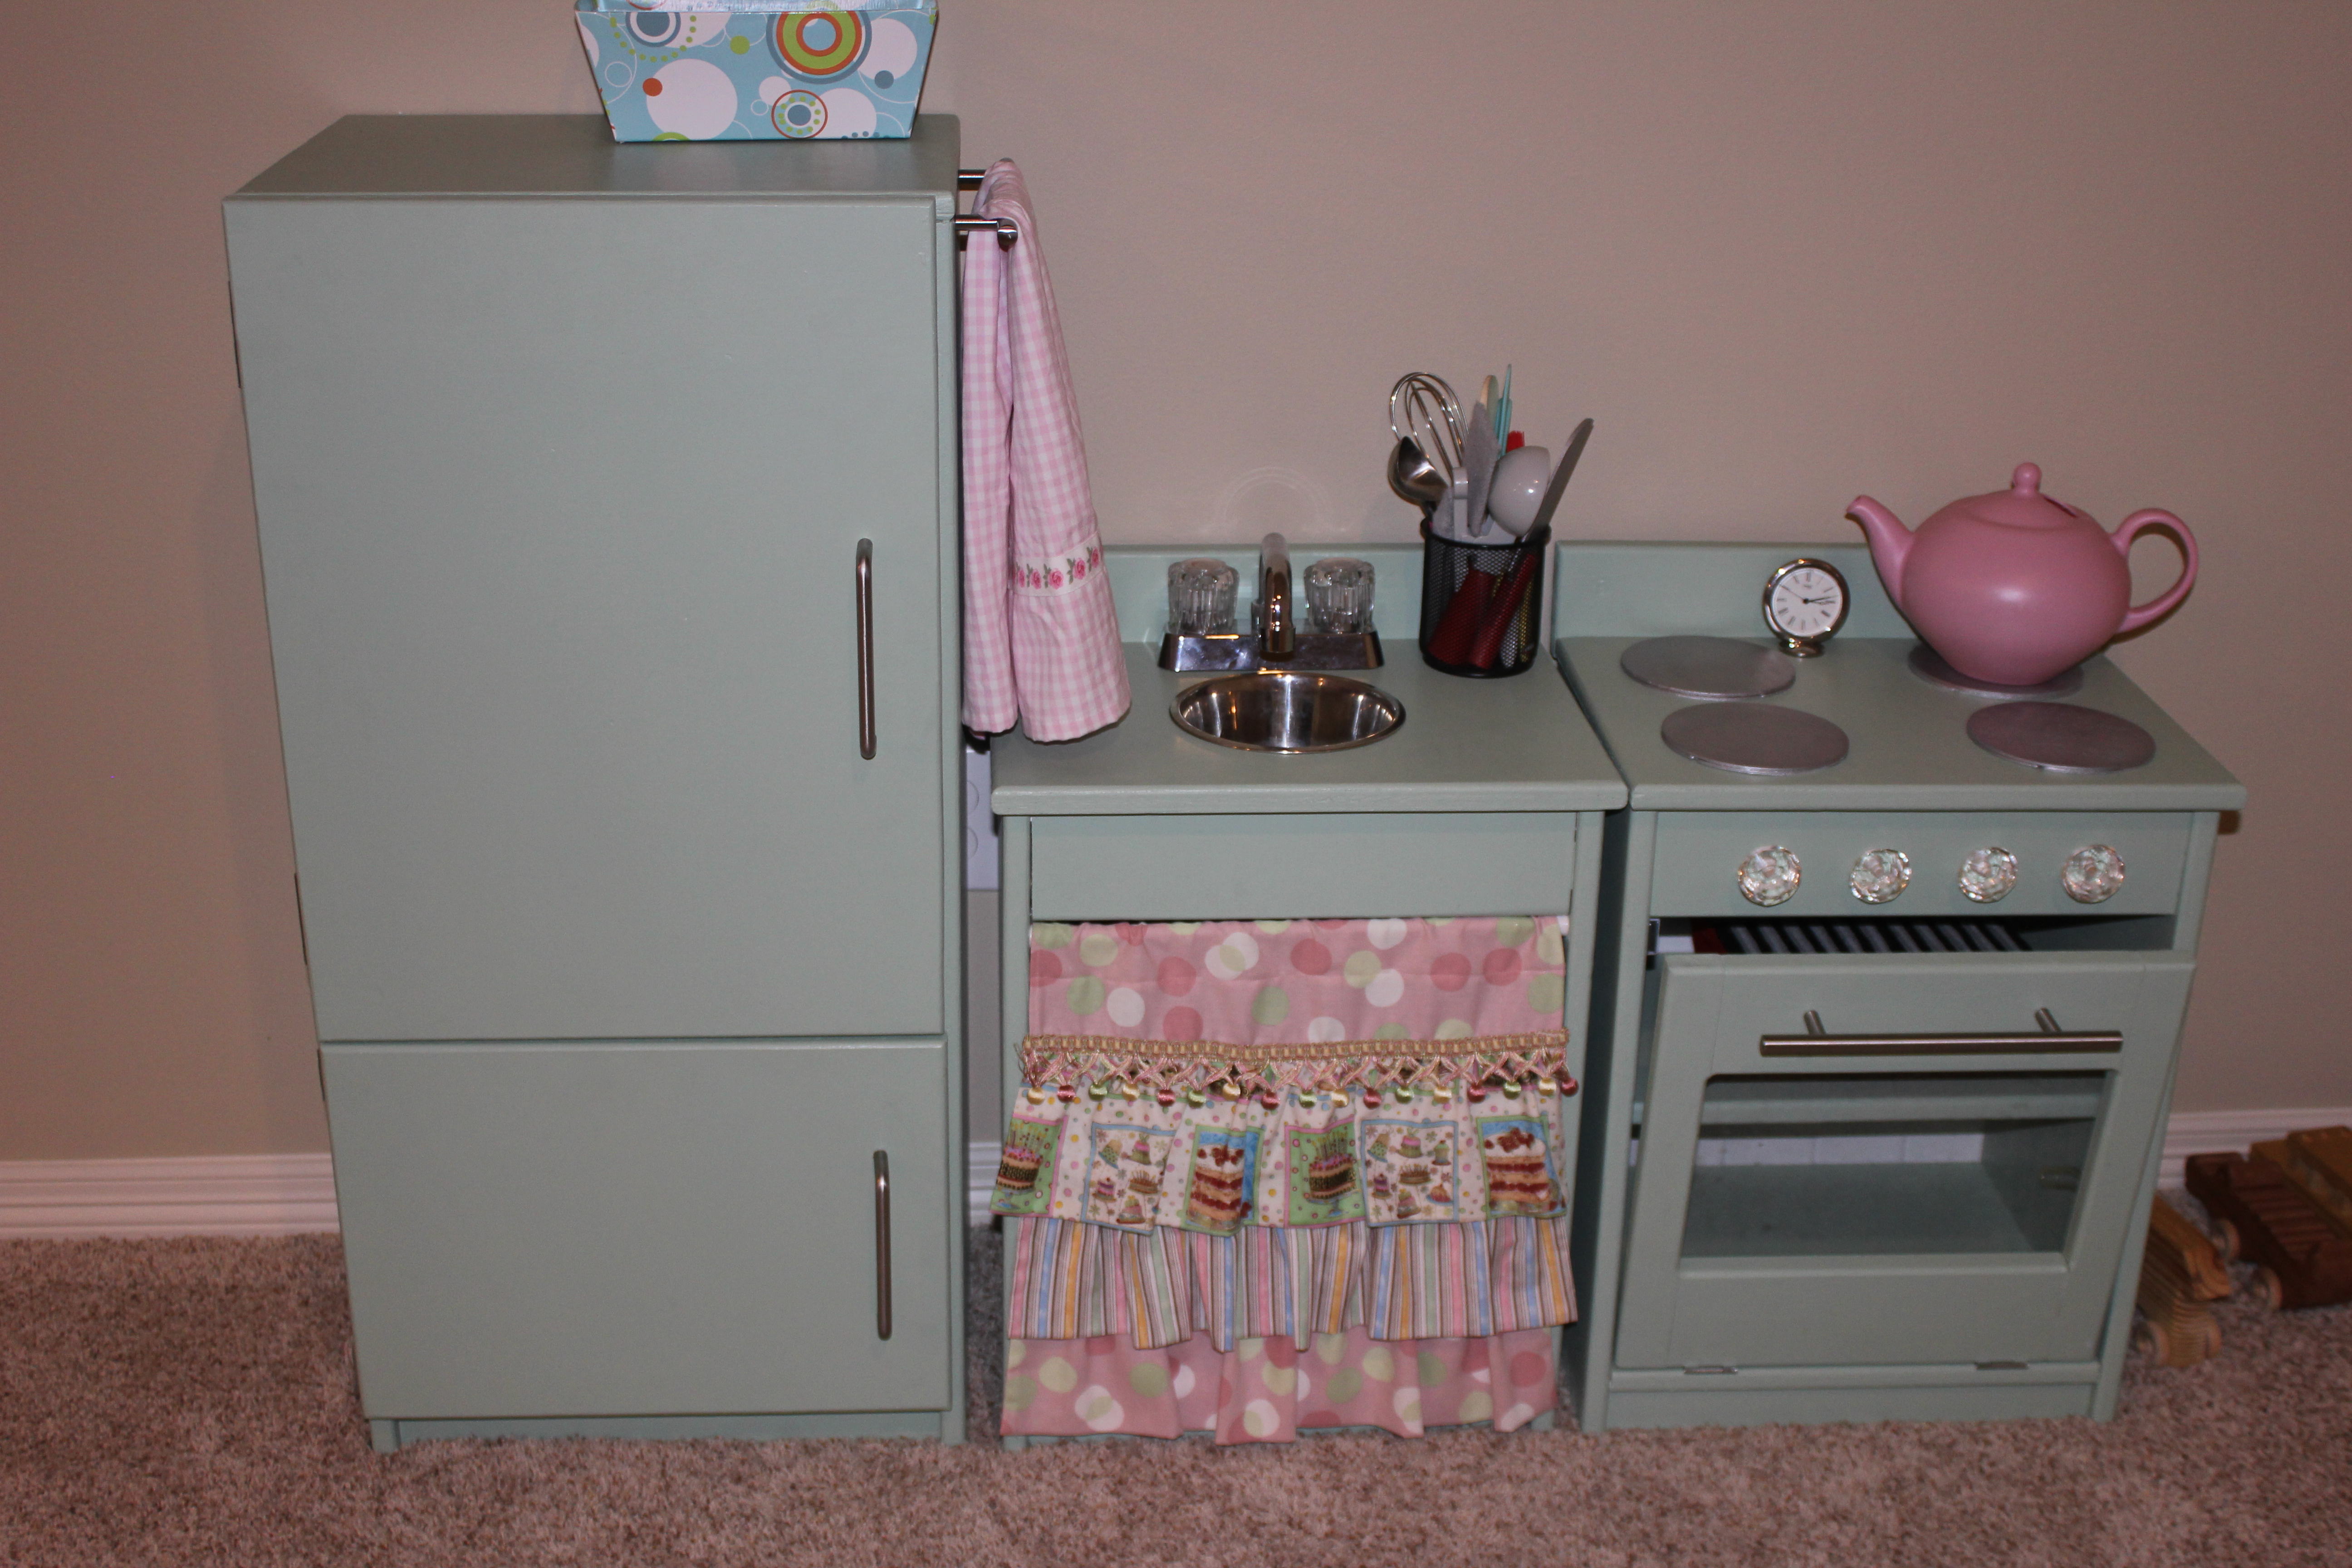 Do It Yourself Home Design: Retro Play Kitchen - DIY Projects